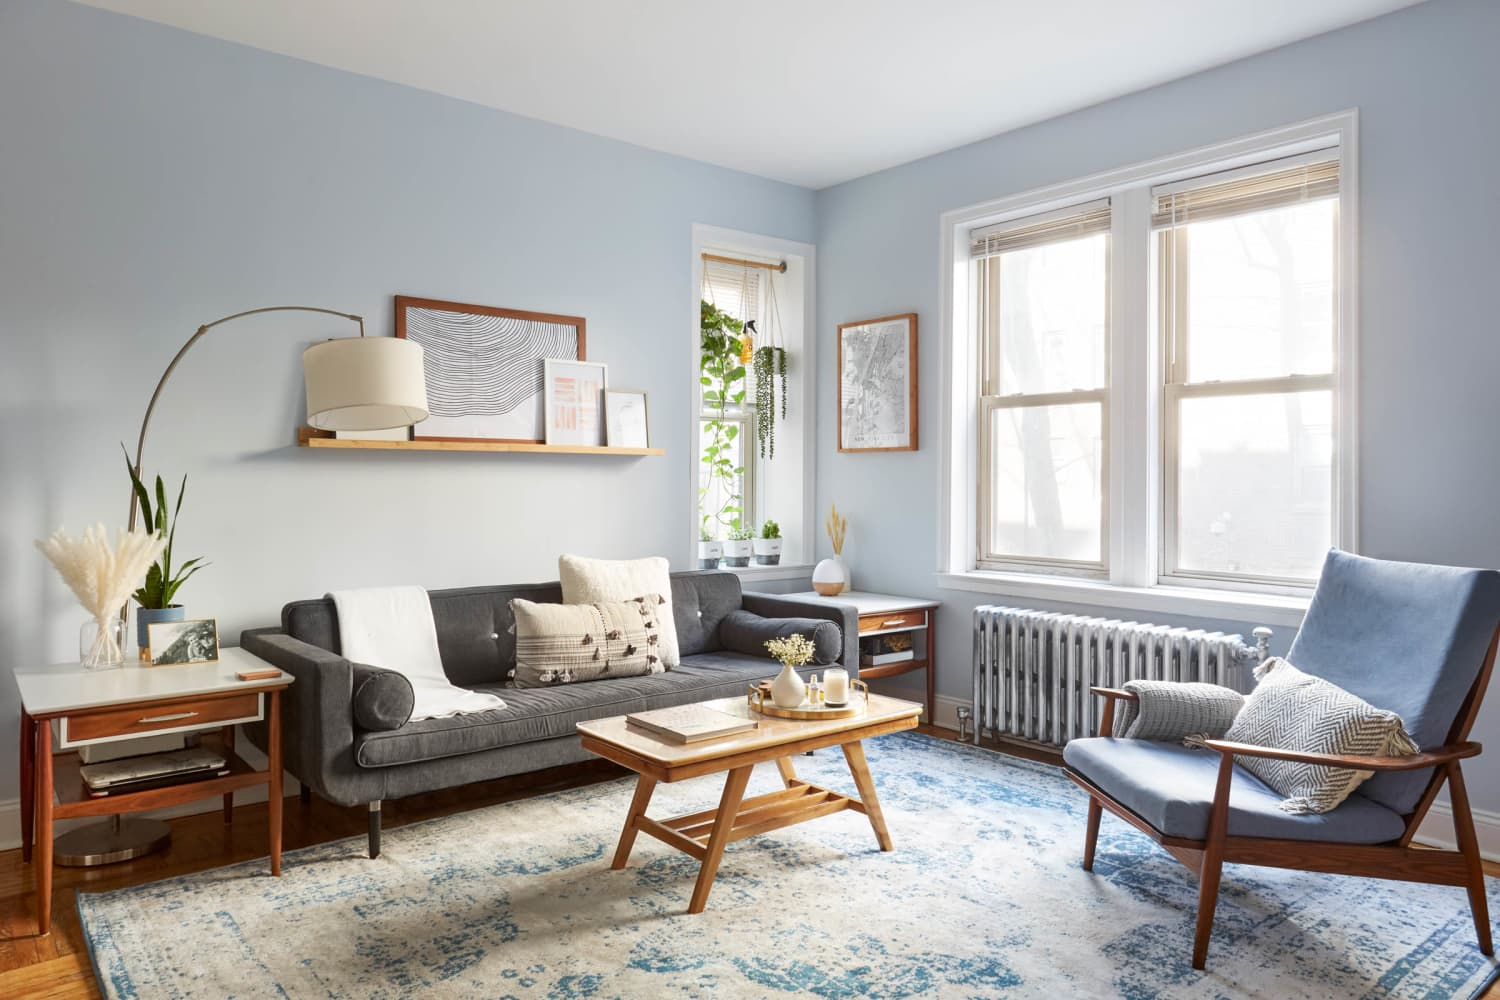 Bright, Natural Color Makes This 600-Square-Foot Apartment Feel Like a Breath of Fresh Air